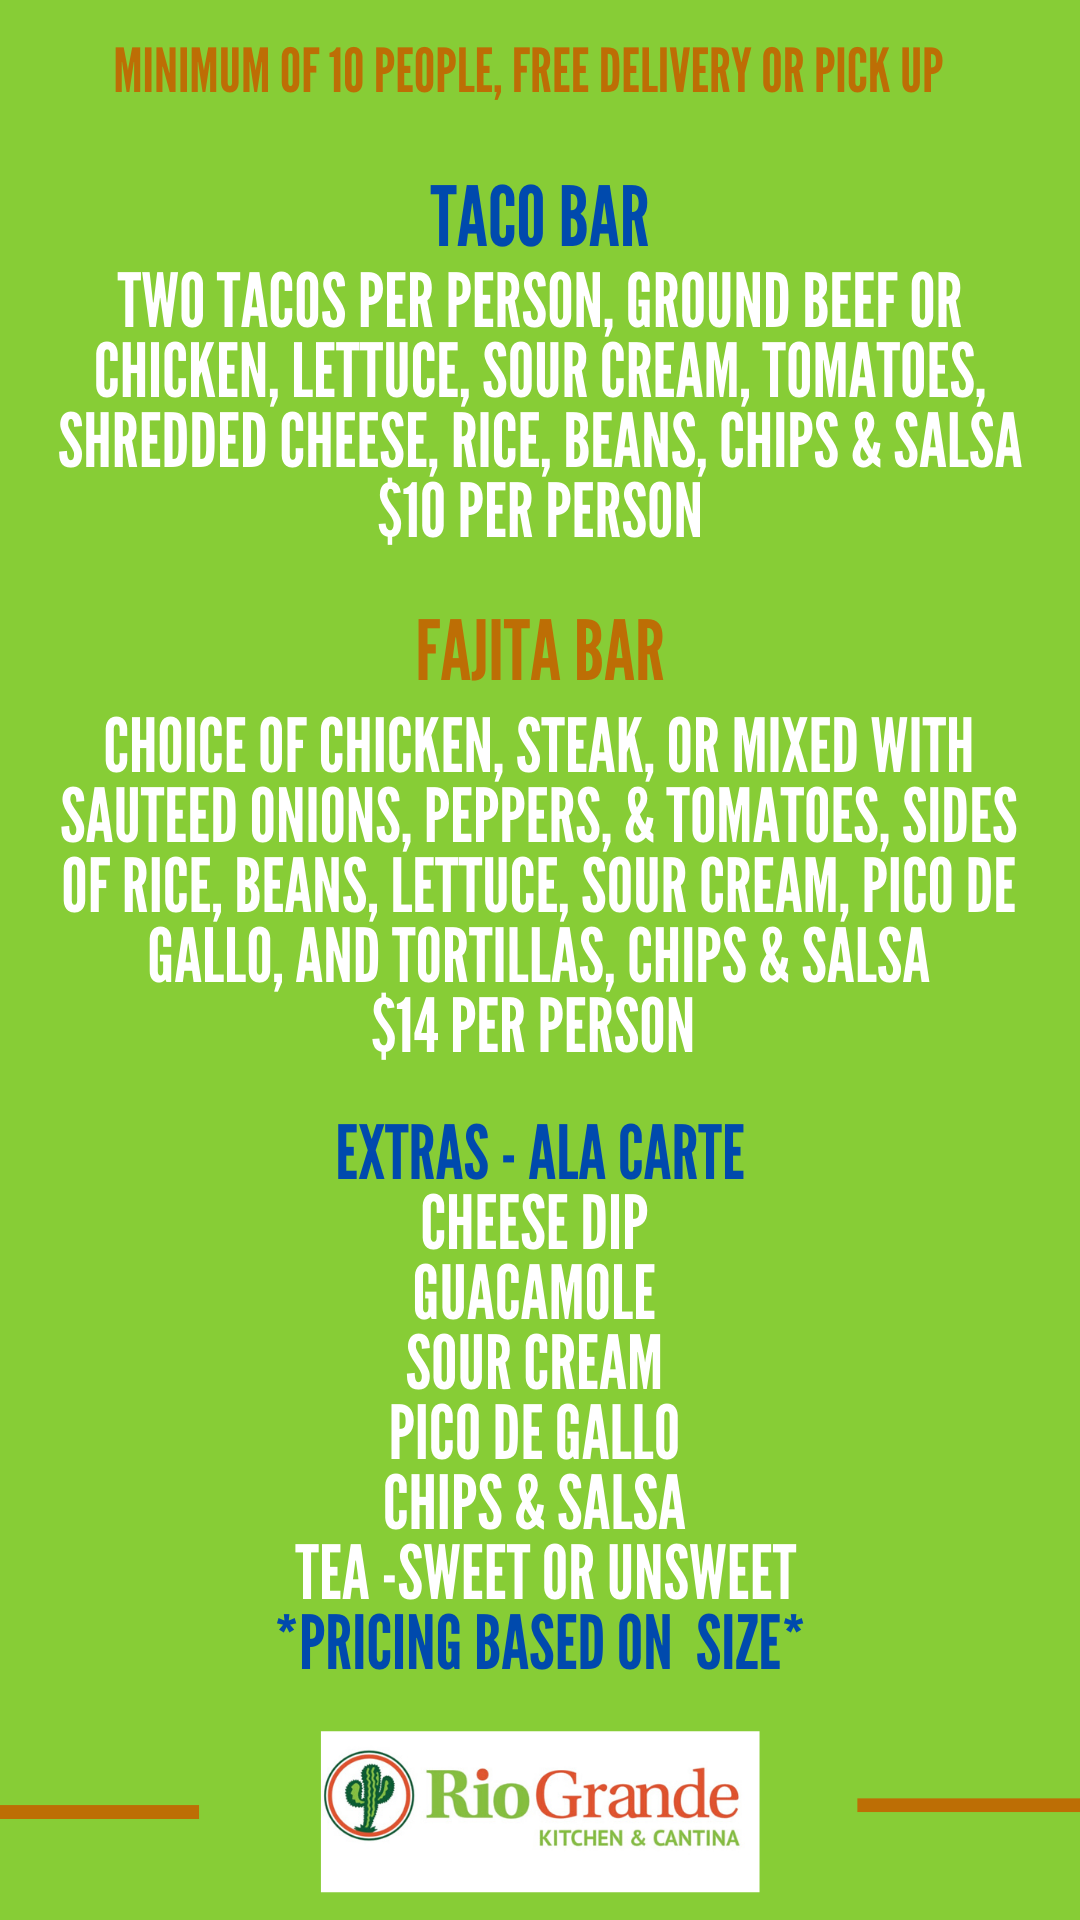 MINIMUM OF 10 PEOPLE, FREE DELIVERY OR PICK UP   TACO BAR  TWO TACOS PER PERSON, GROUND BEEF OR CHICKEN, LETTUCE, SOUR CREAM, TOMATOES, SHREDDED CHEESE, RICE, BEANS, CHIPS & SALSA $10 PER PERSON   CHOICE OF CHICKEN, STEAK, OR MIXED WITH SAUTEED ONIONS, PEPPERS, & TOMATOES, SIDES OF RICE, BEANS, LETTUCE, SOUR CREAM, PICO DE GALLO, AND TORTILLAS, CHIPS & SALSA $14 PER PERSON   EXTRAS - ALA CARTE  CHEESE DIP, GUACAMOLE, SOUR CREAM, PICO DE GALLO, CHIPS, TEA - SWEET OR UNSWEET  *PRICING BASED ON SIZE*   Rio Grande  KITCHEN & CANTINA